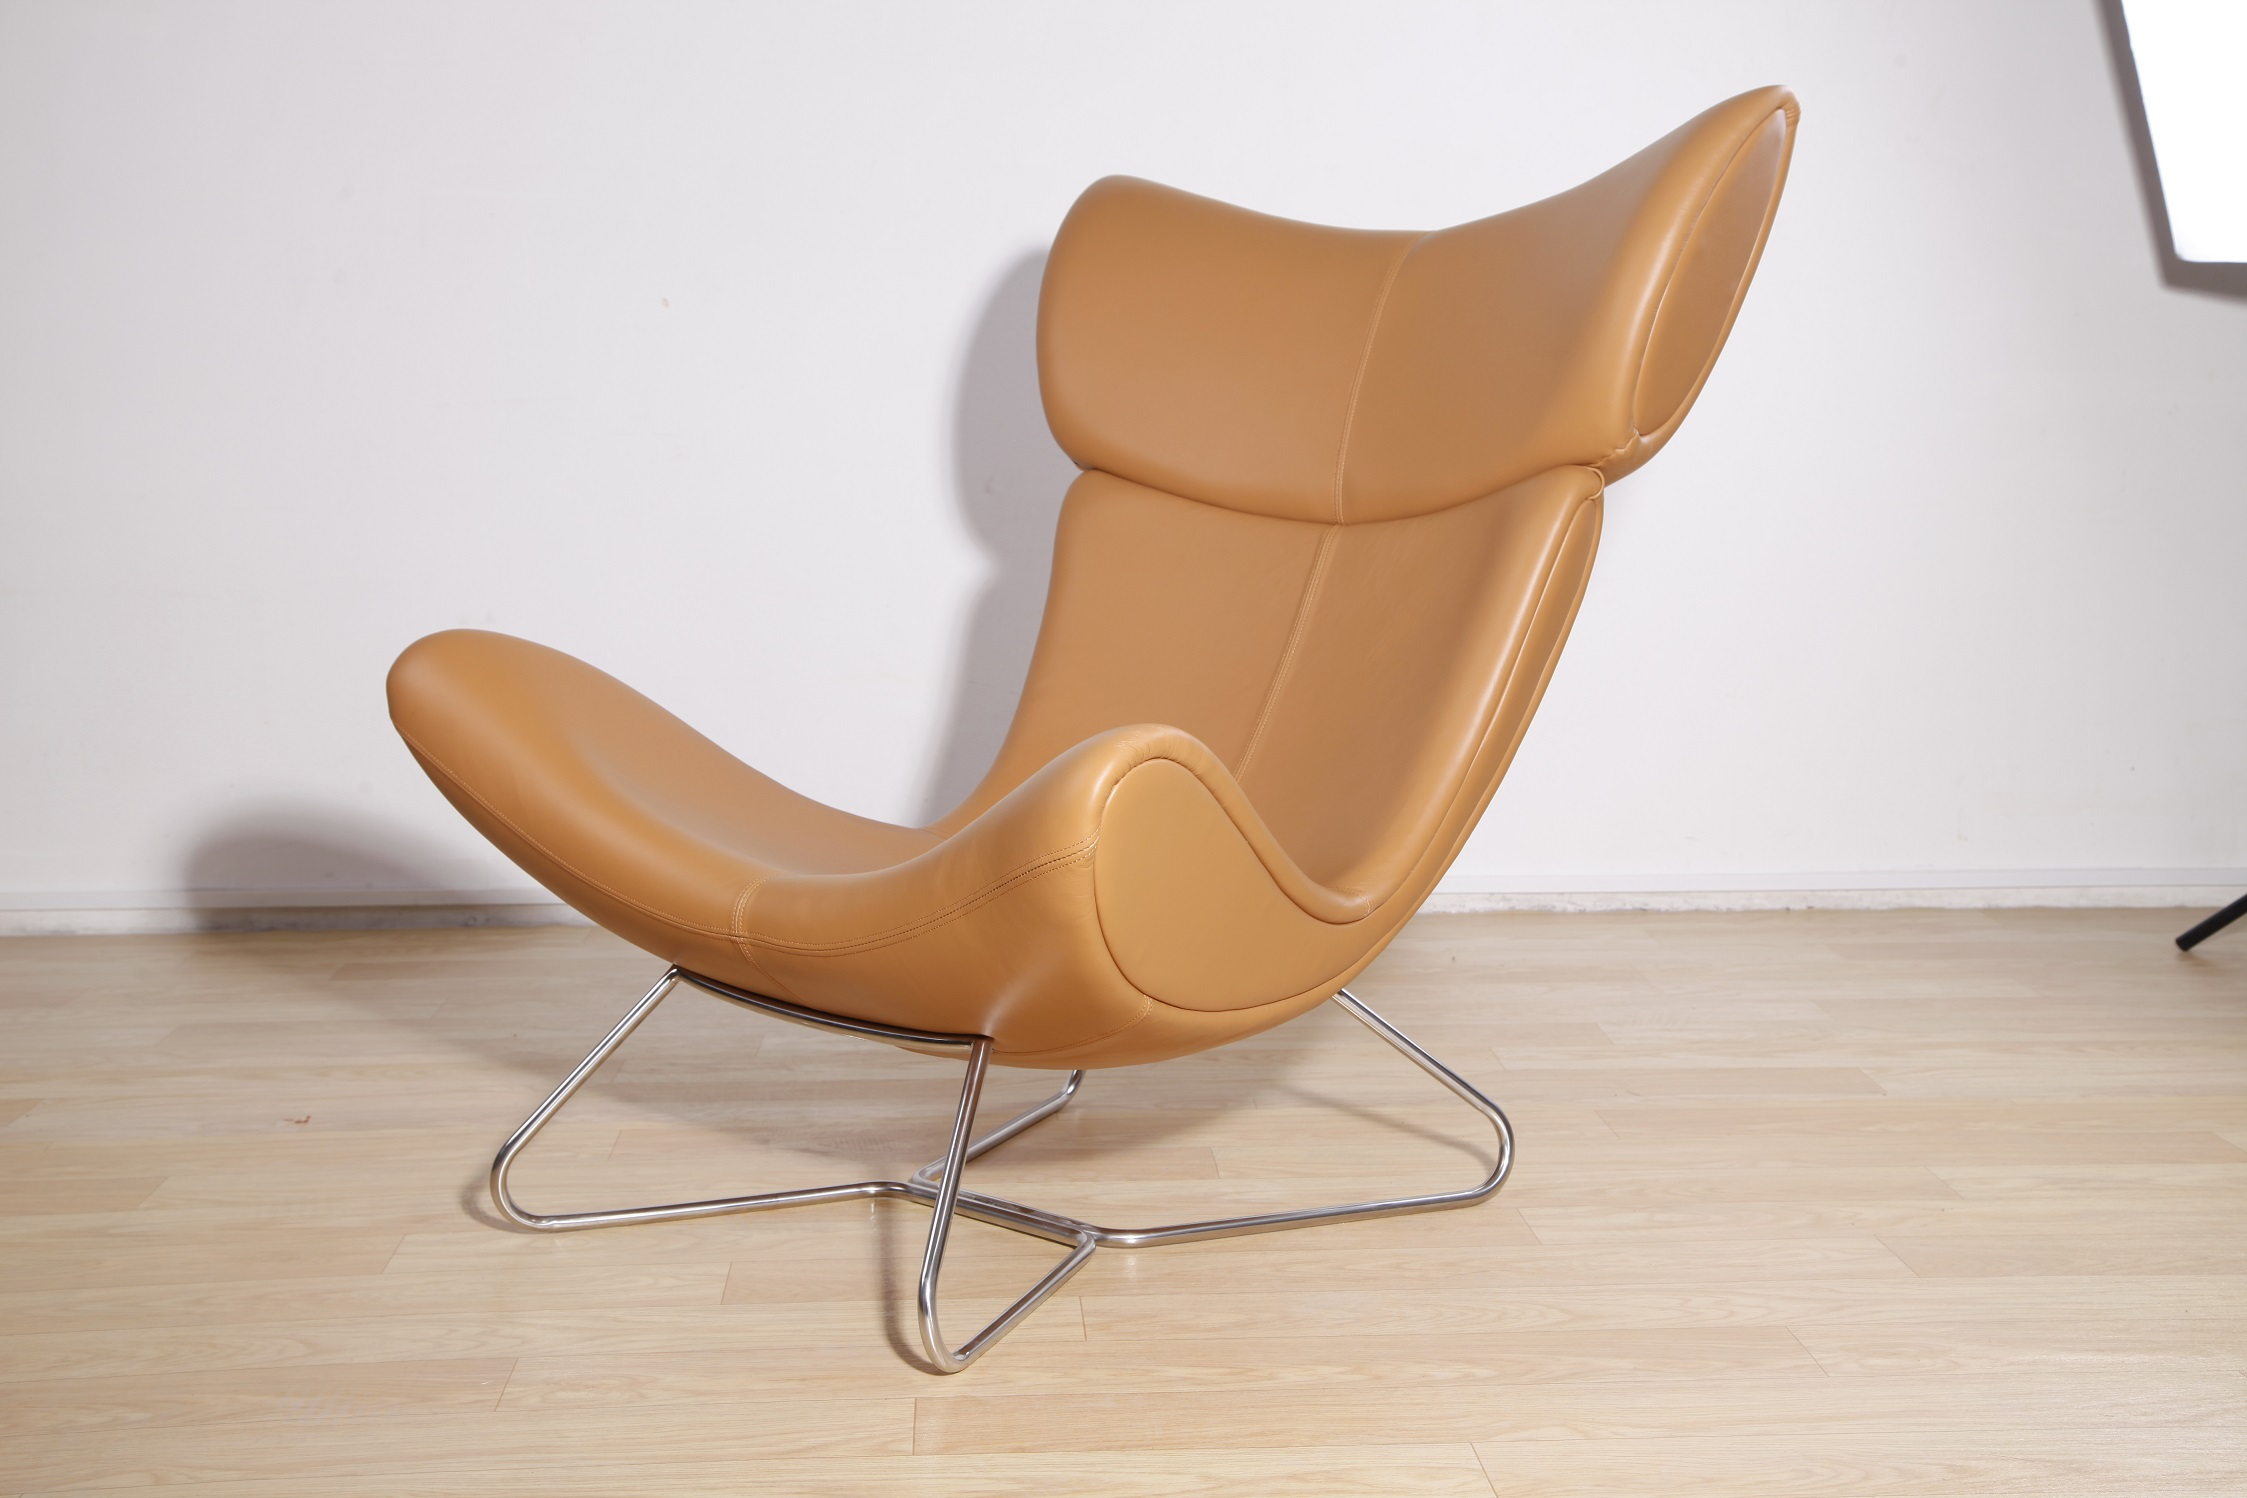 imola chair reproduction